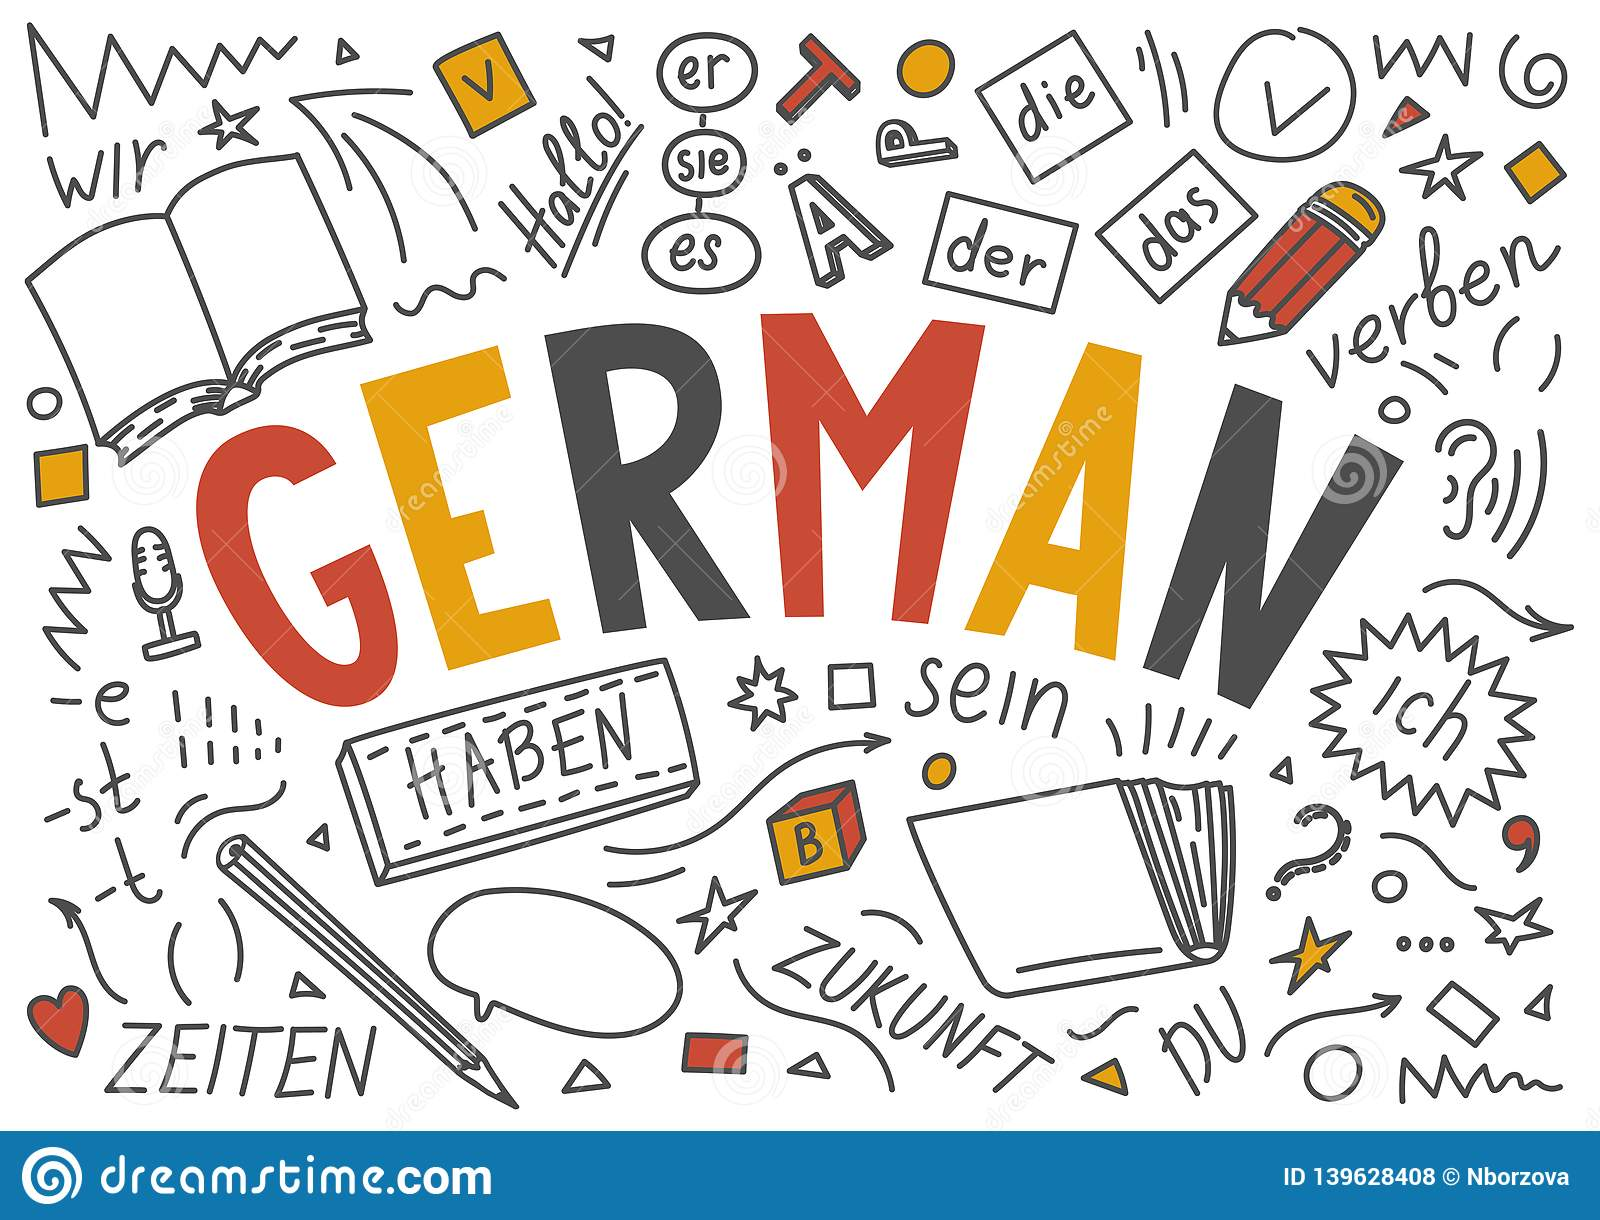 German Language Hand Drawn Doodles and Lettering. Stock Vector ...